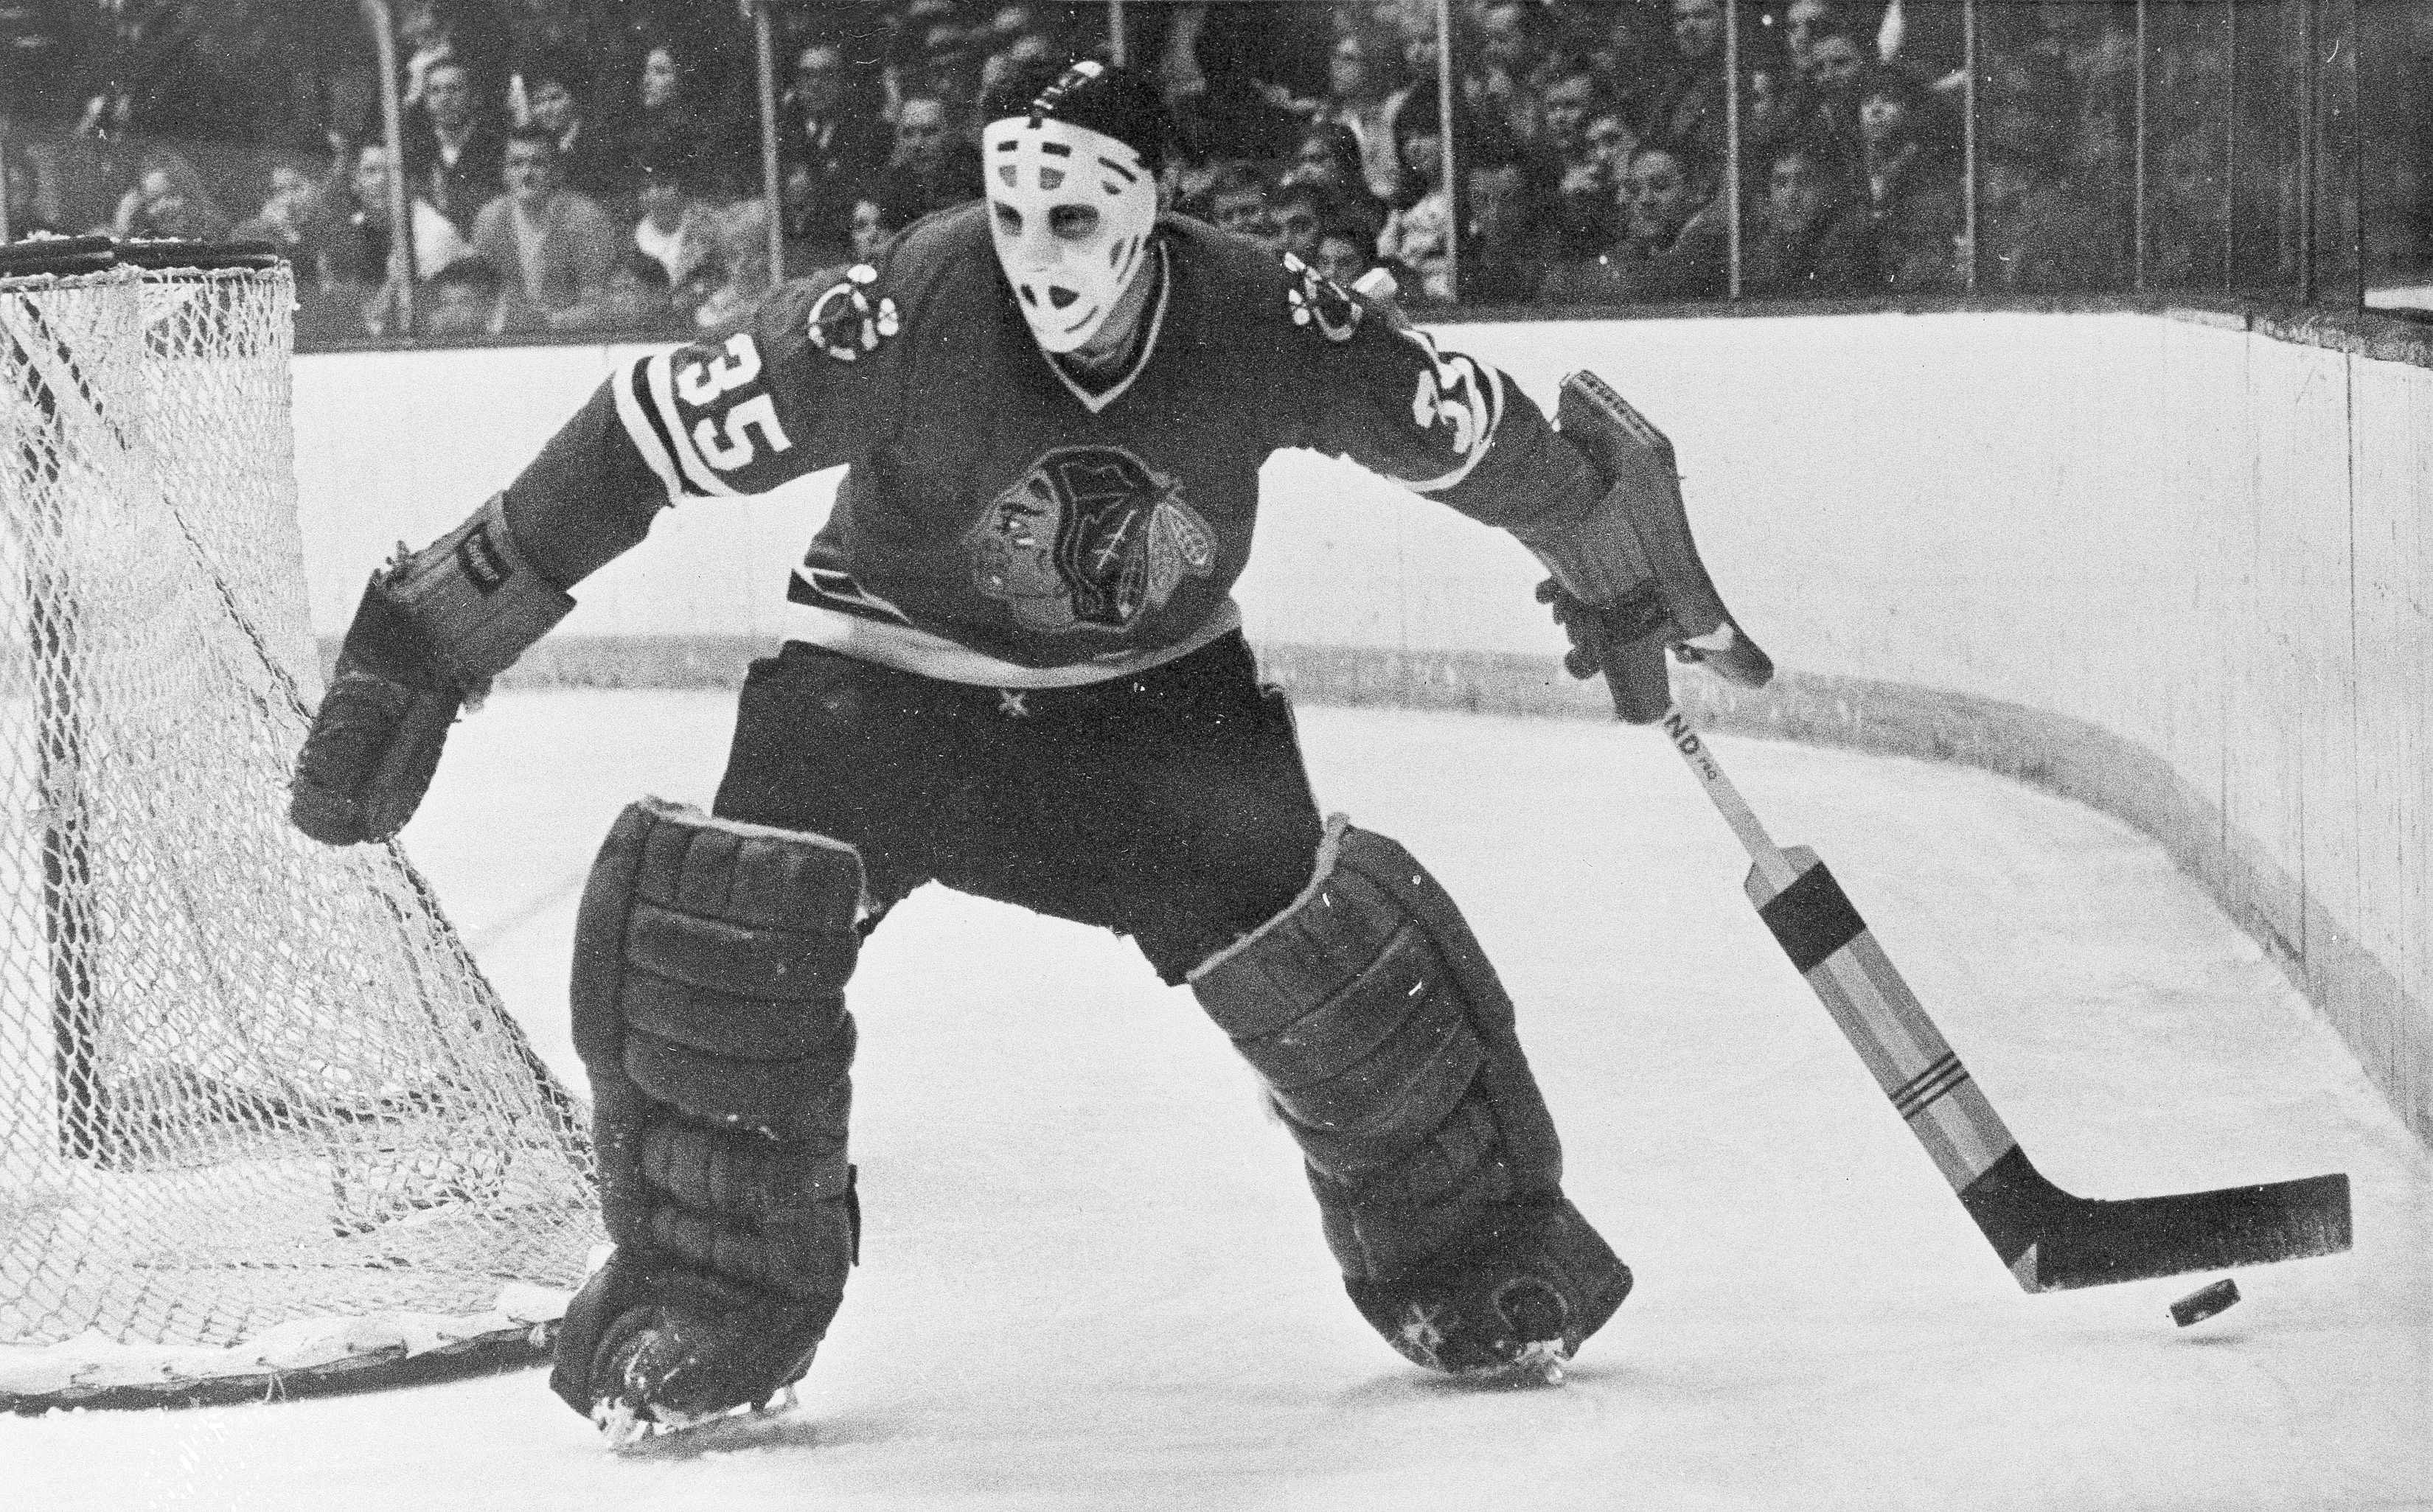 Blackhawks goalie Tony Esposito moves behind the net to stop the puck for a teammate during a 1970 game against the Toronto Maple Leafs in Chicago.